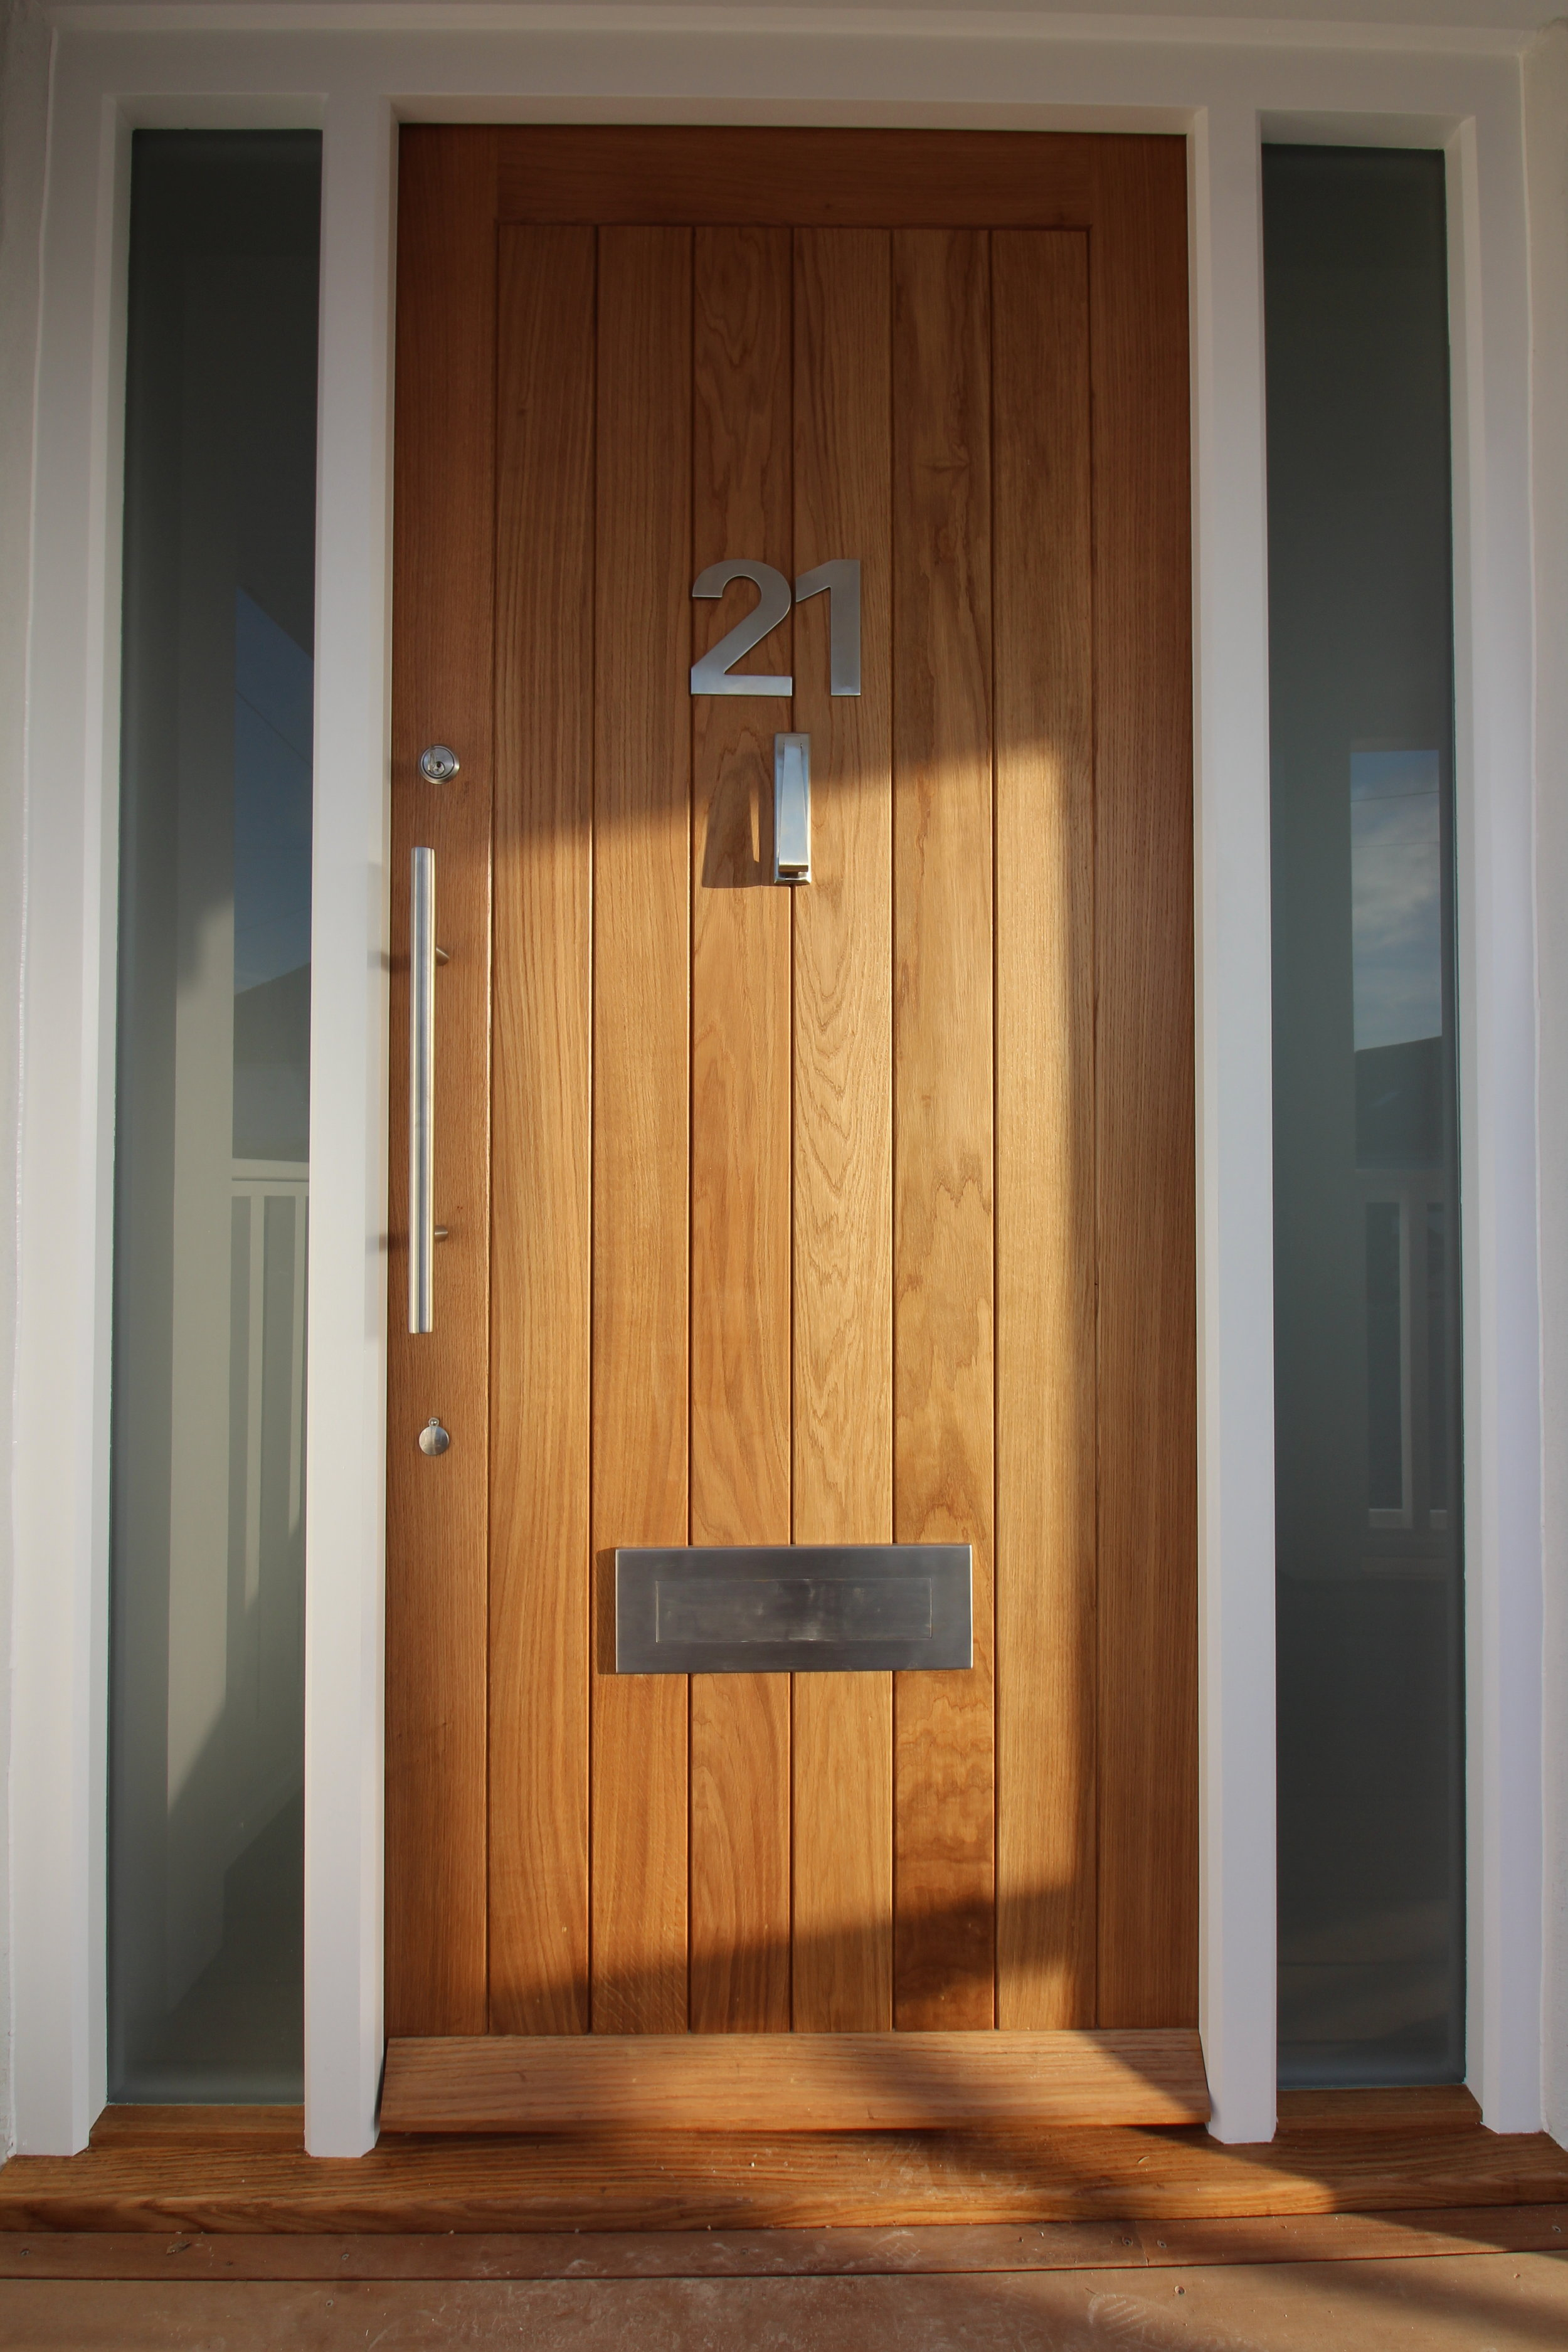 Hardwood contemporary door, with frosted glass either side to maximise natural light.